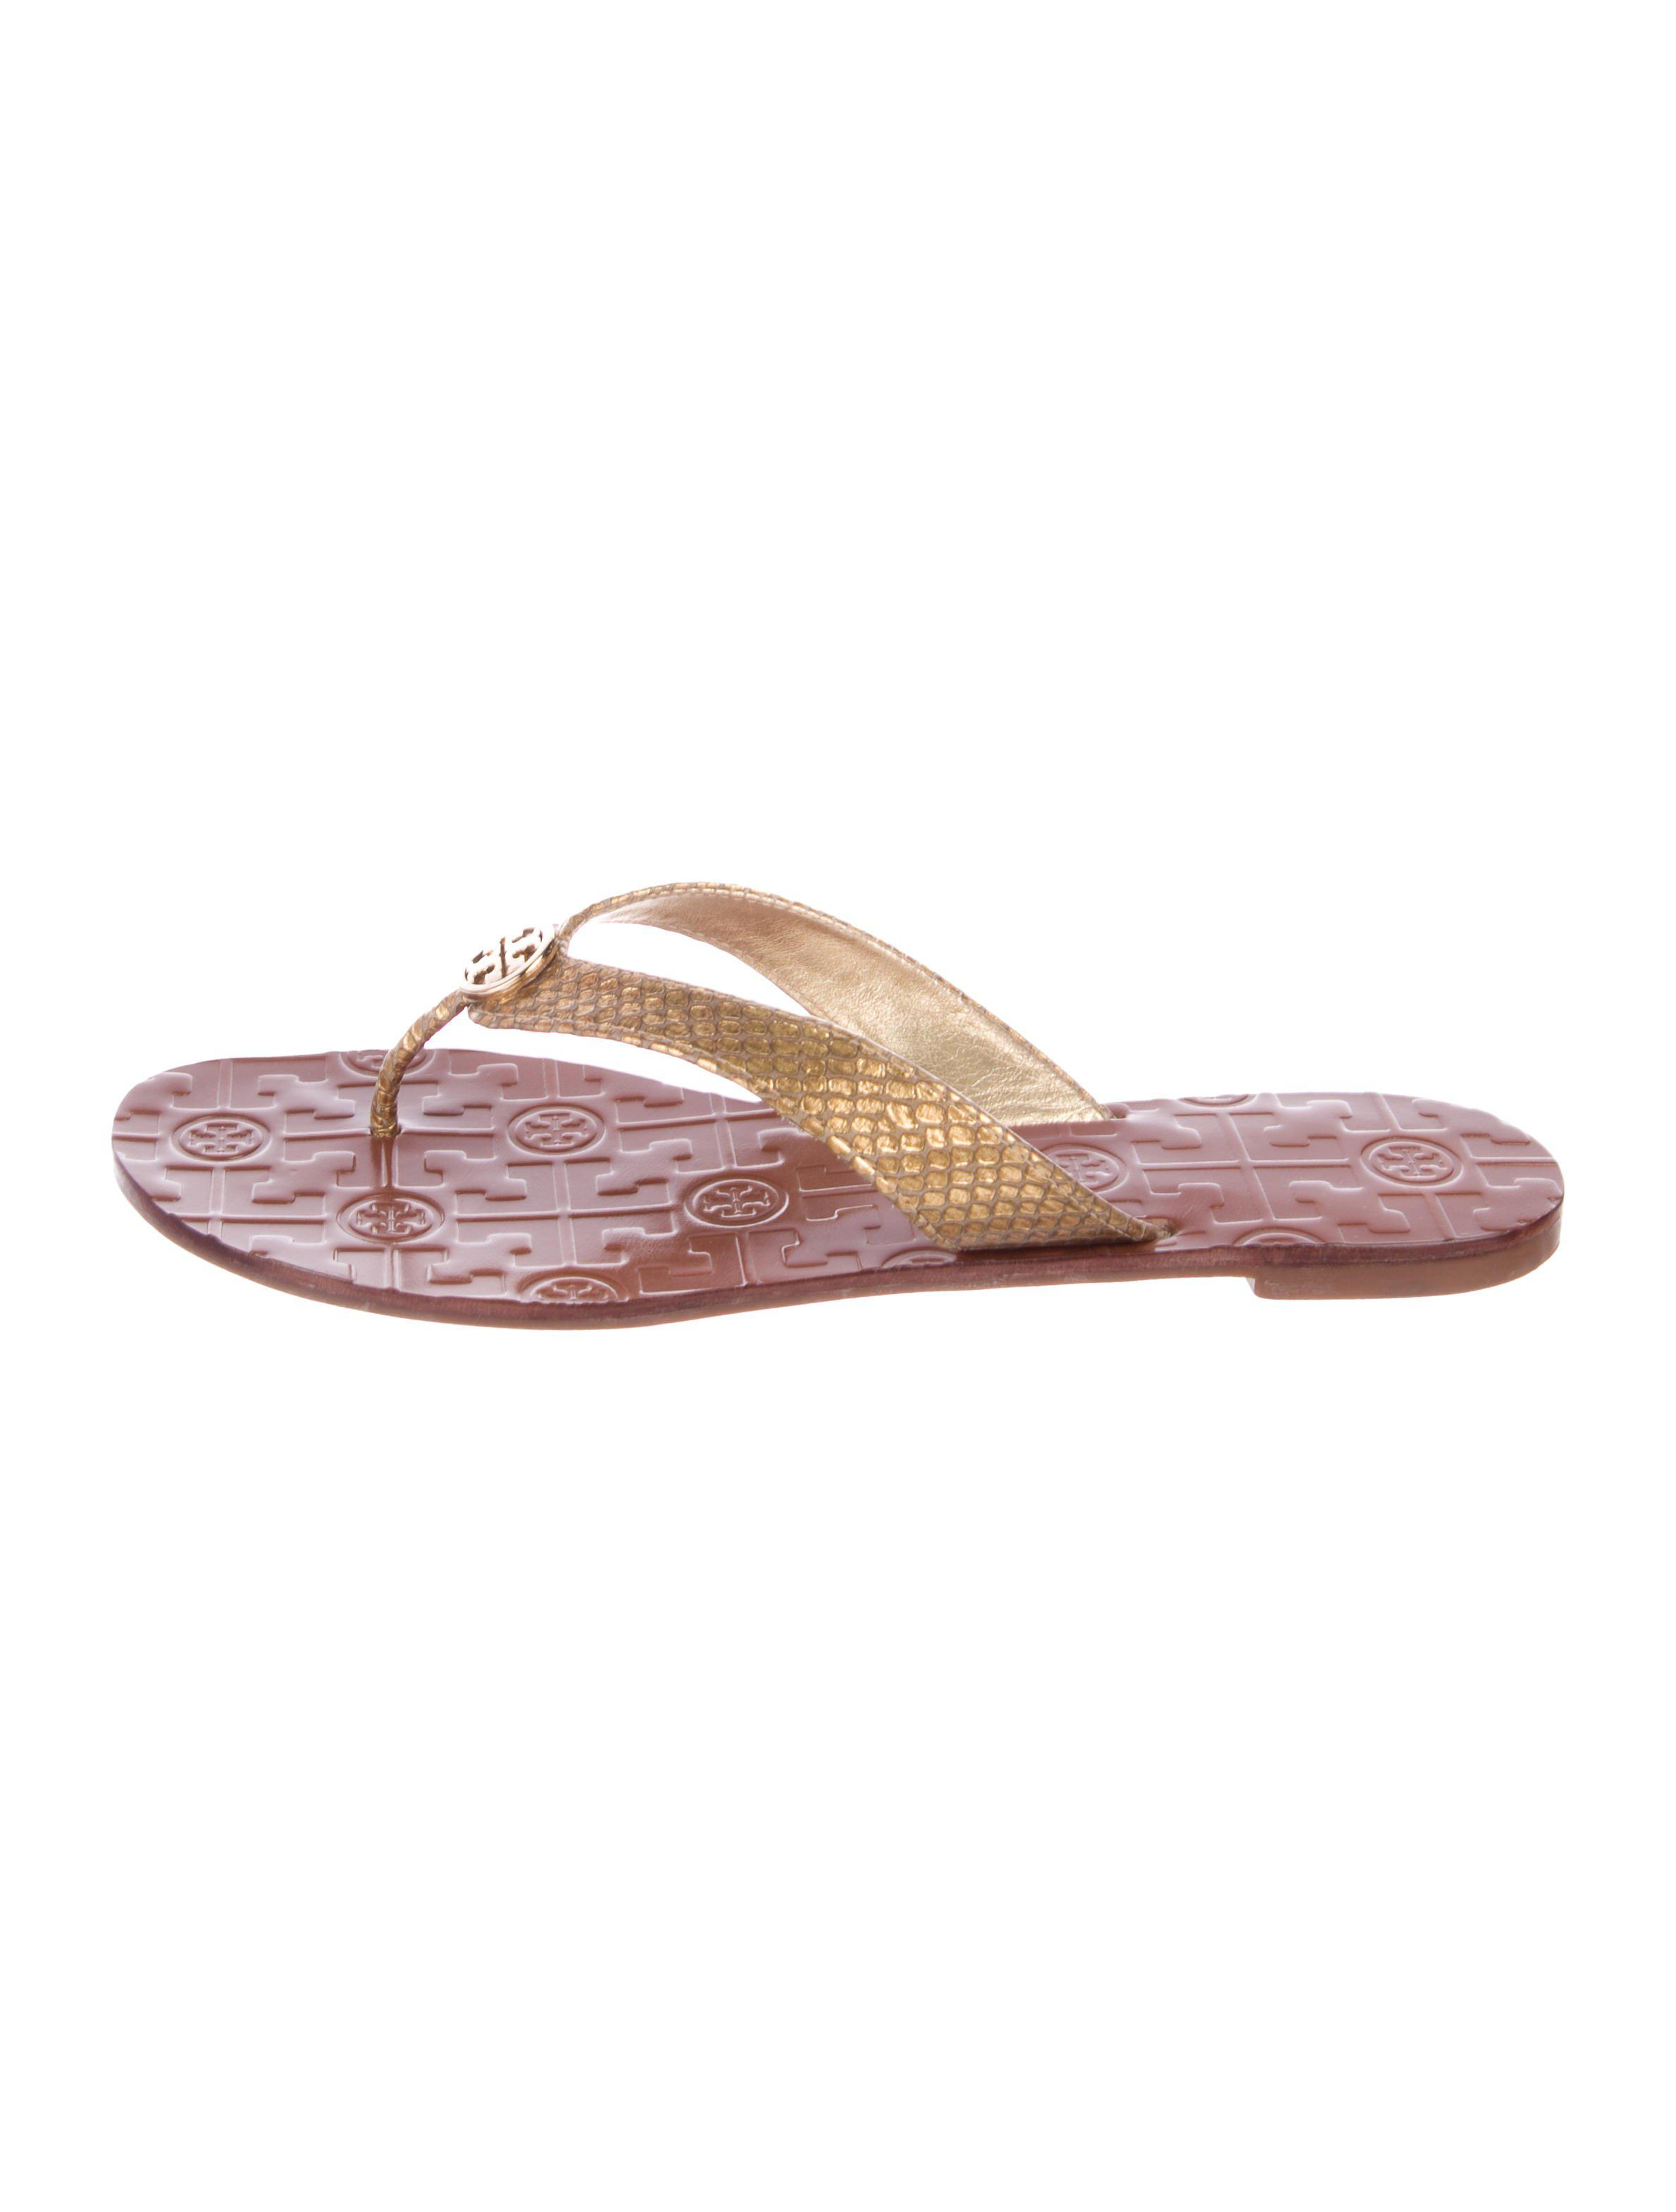 6037b8ee2913d7 Lyst - Tory Burch Embossed Thong Sandals Gold in Metallic